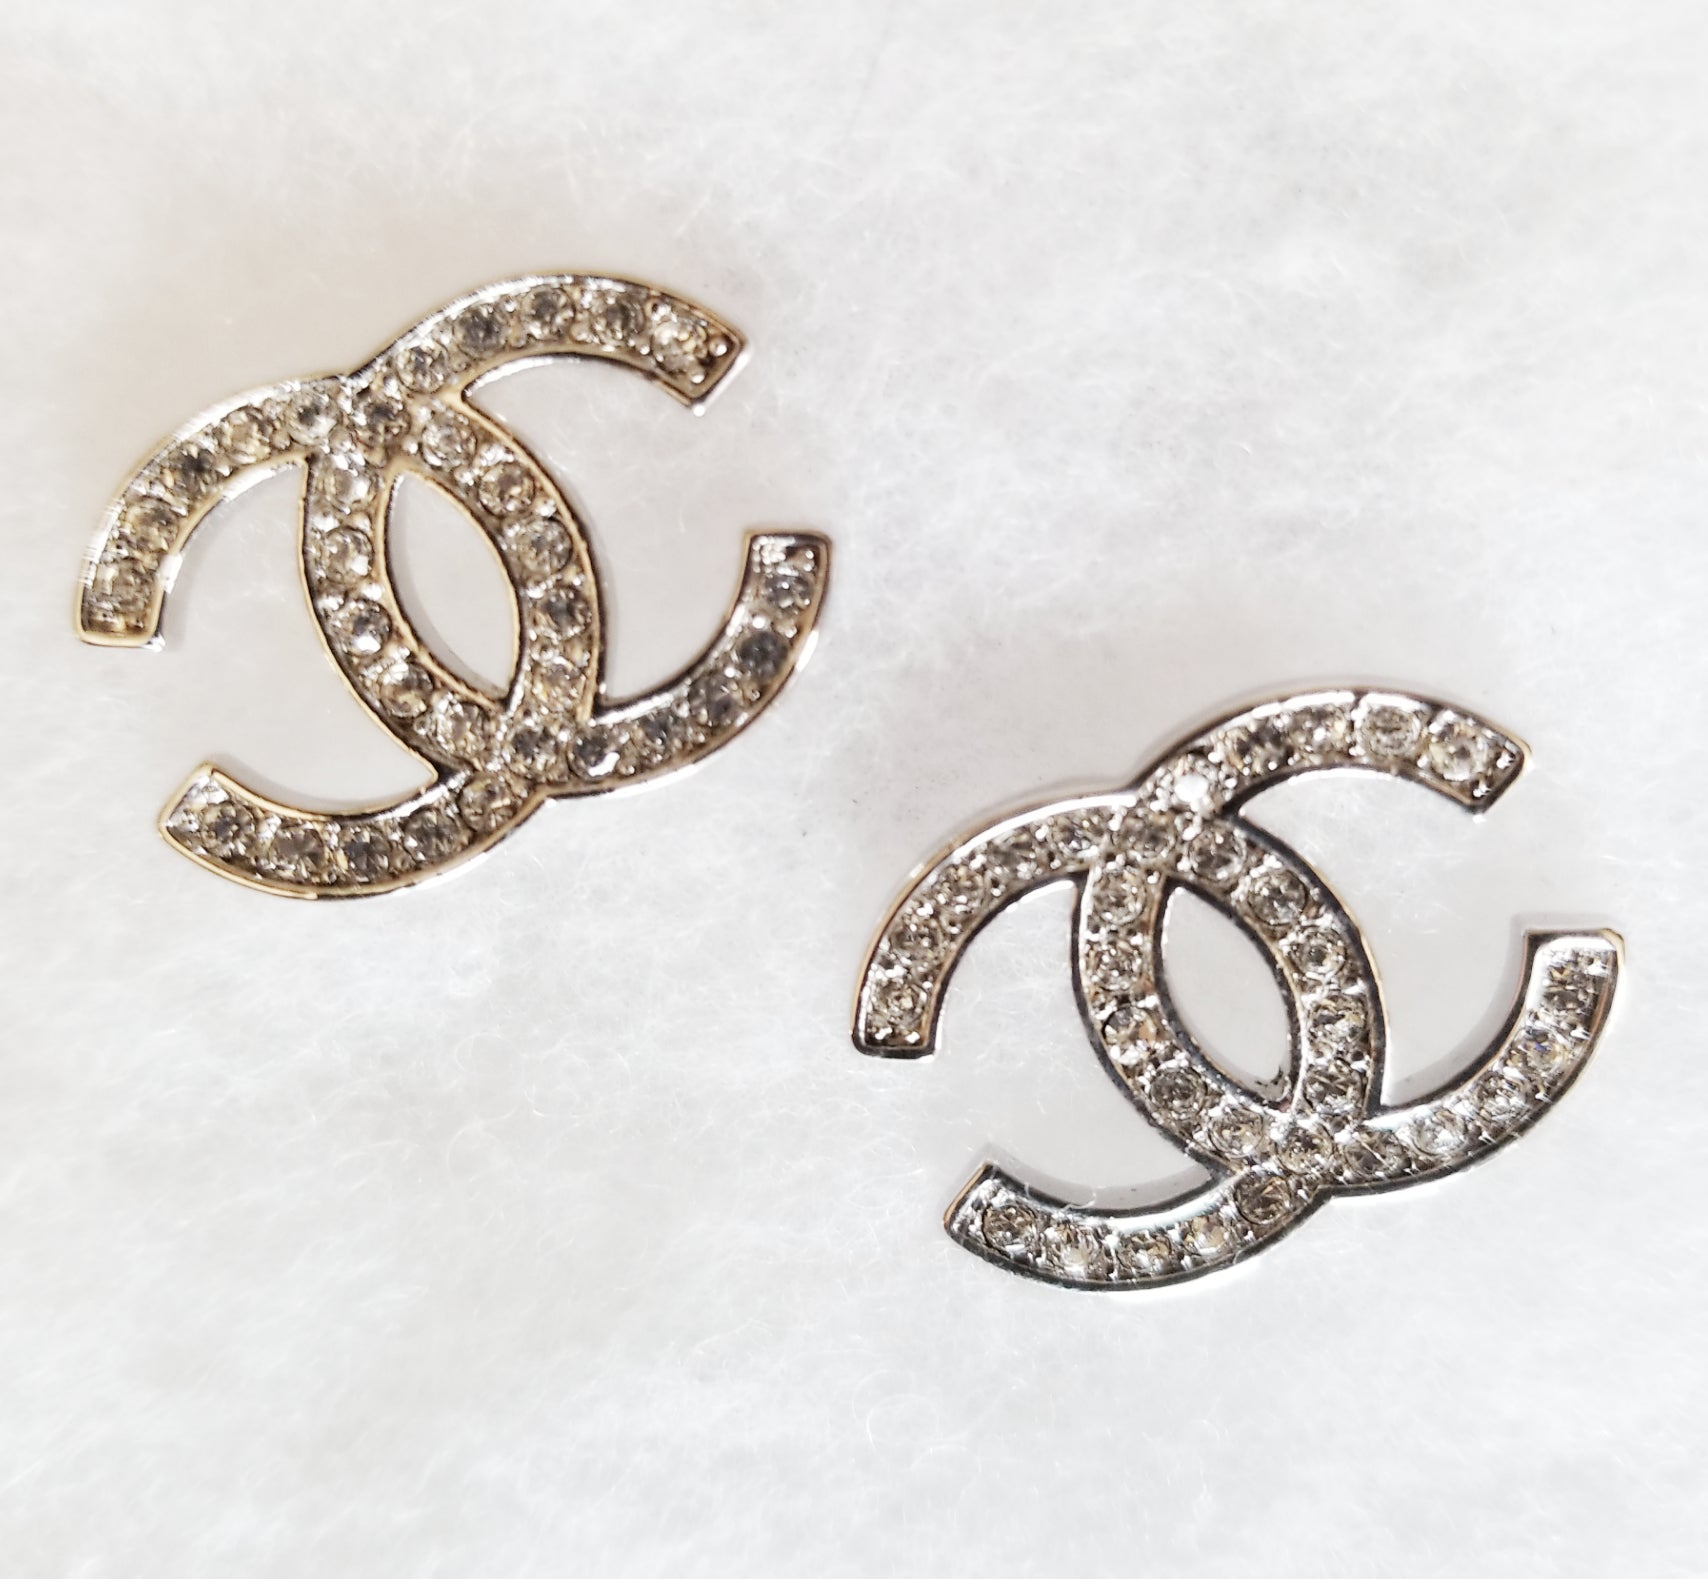 Chanel Inspired Jewelry Chanel Replica Earrings On Sale Now Shop Fame